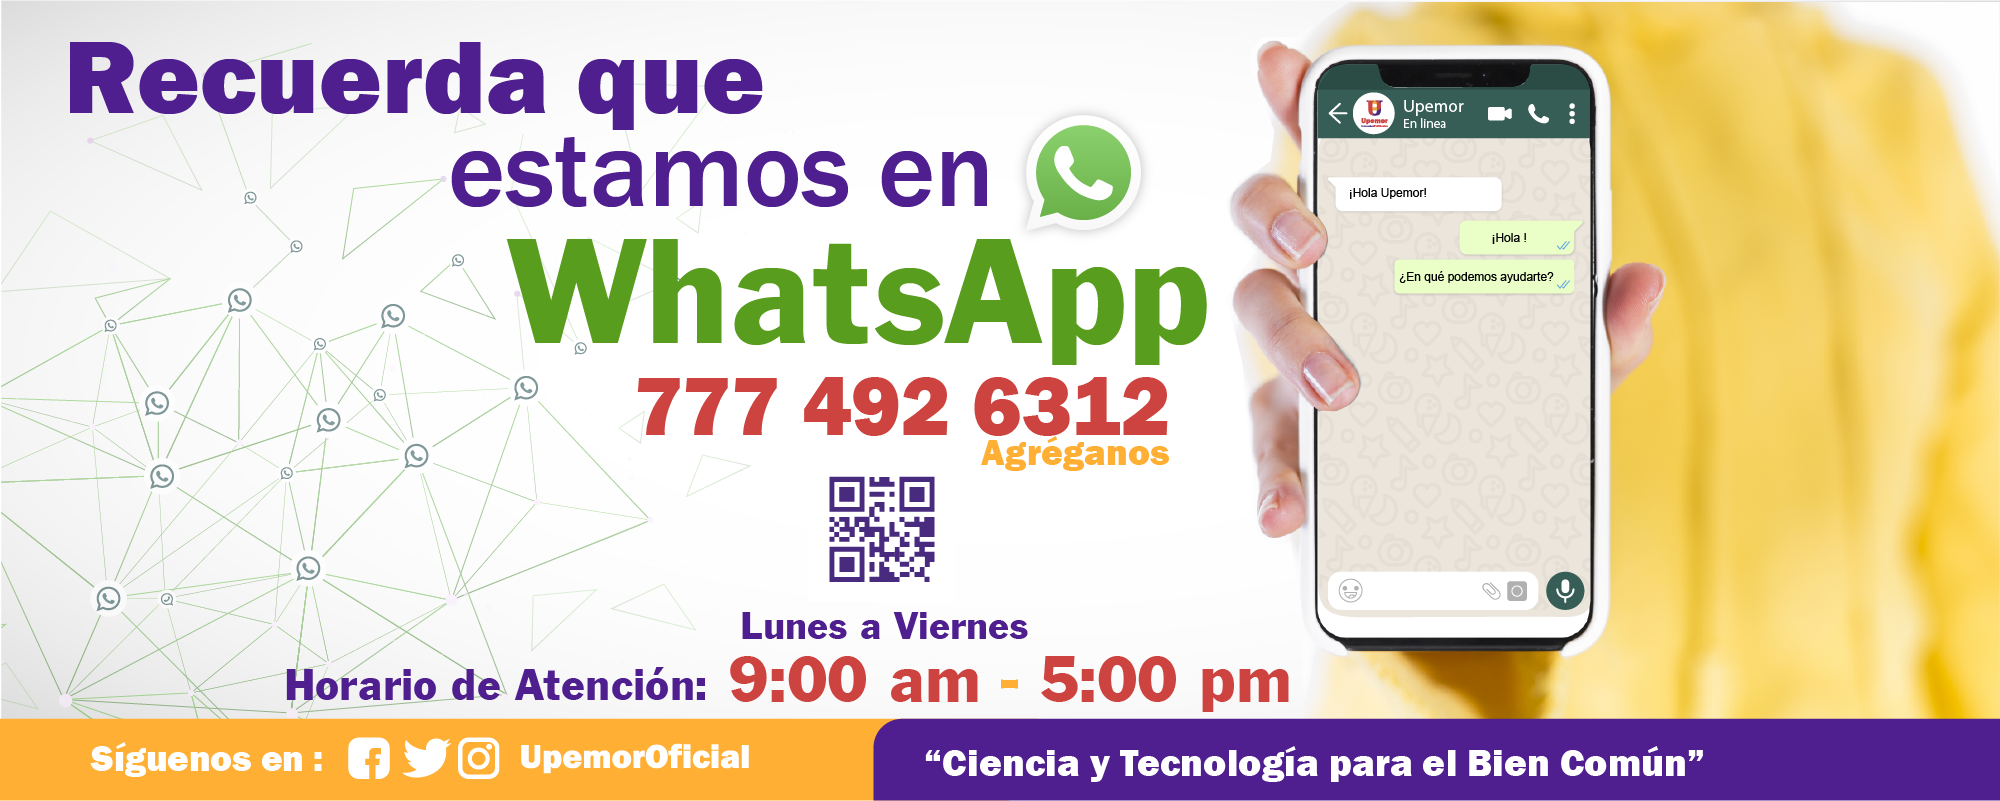 WhatsApp 777 492 63 12